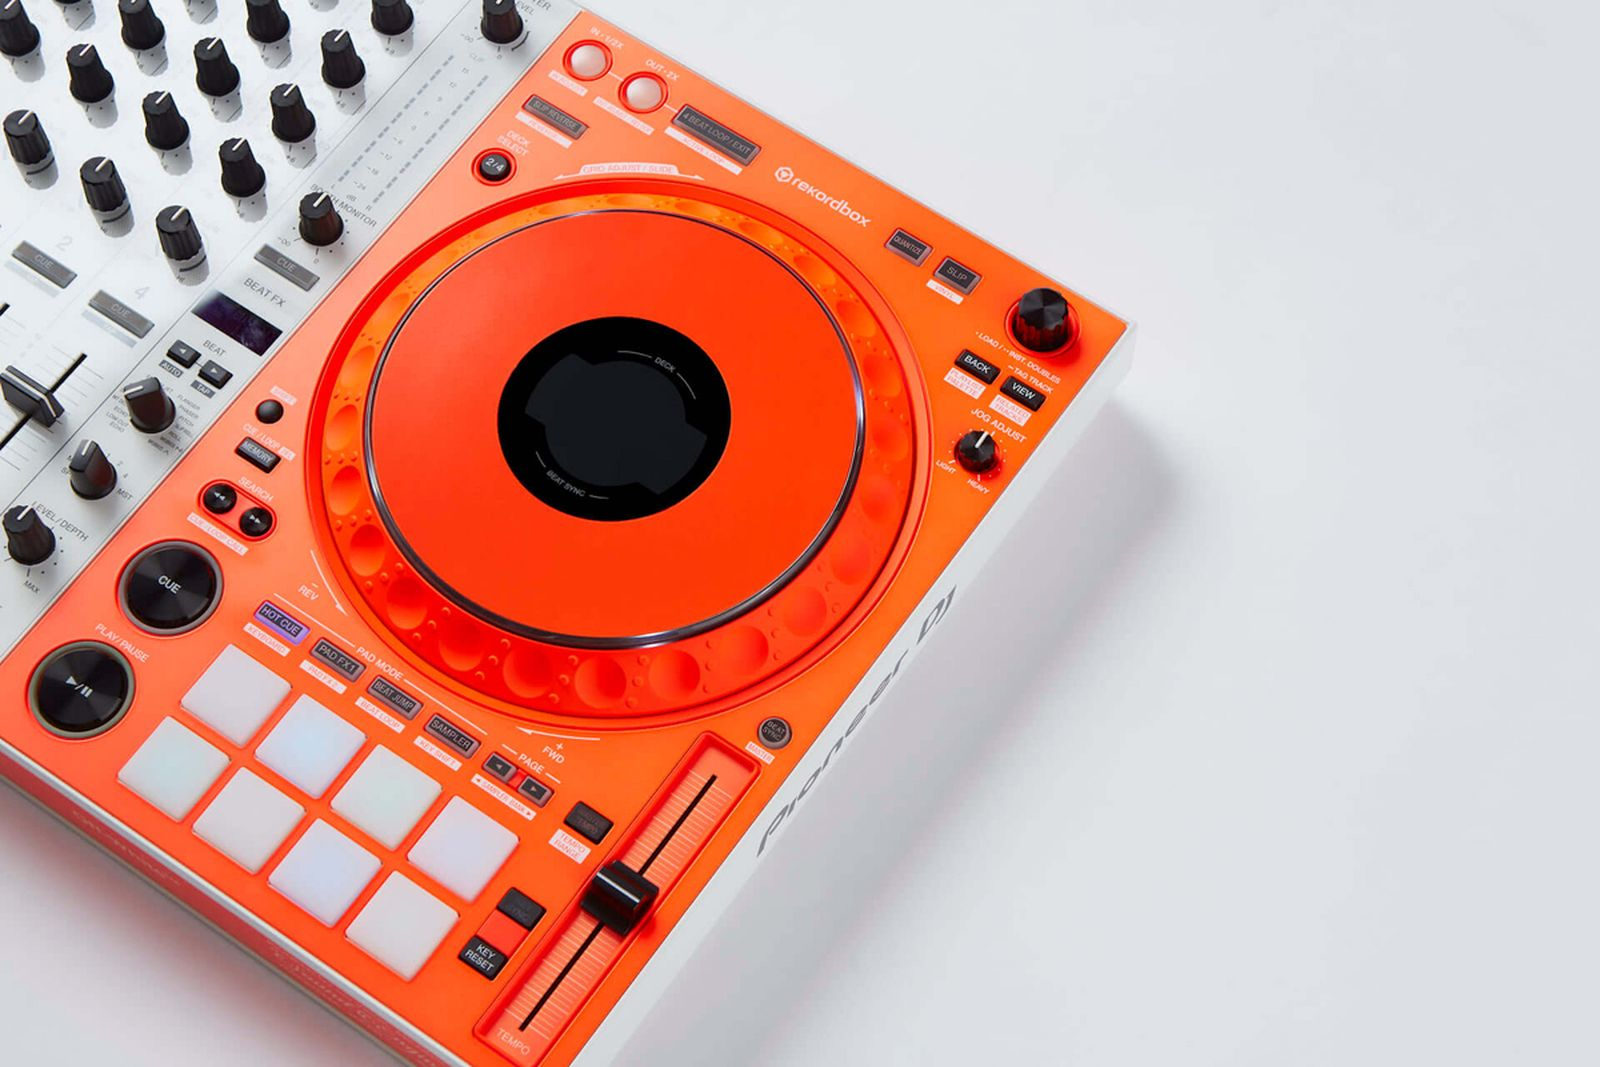 off-white-pioneer-dj-controller-apparel-collab- (5)